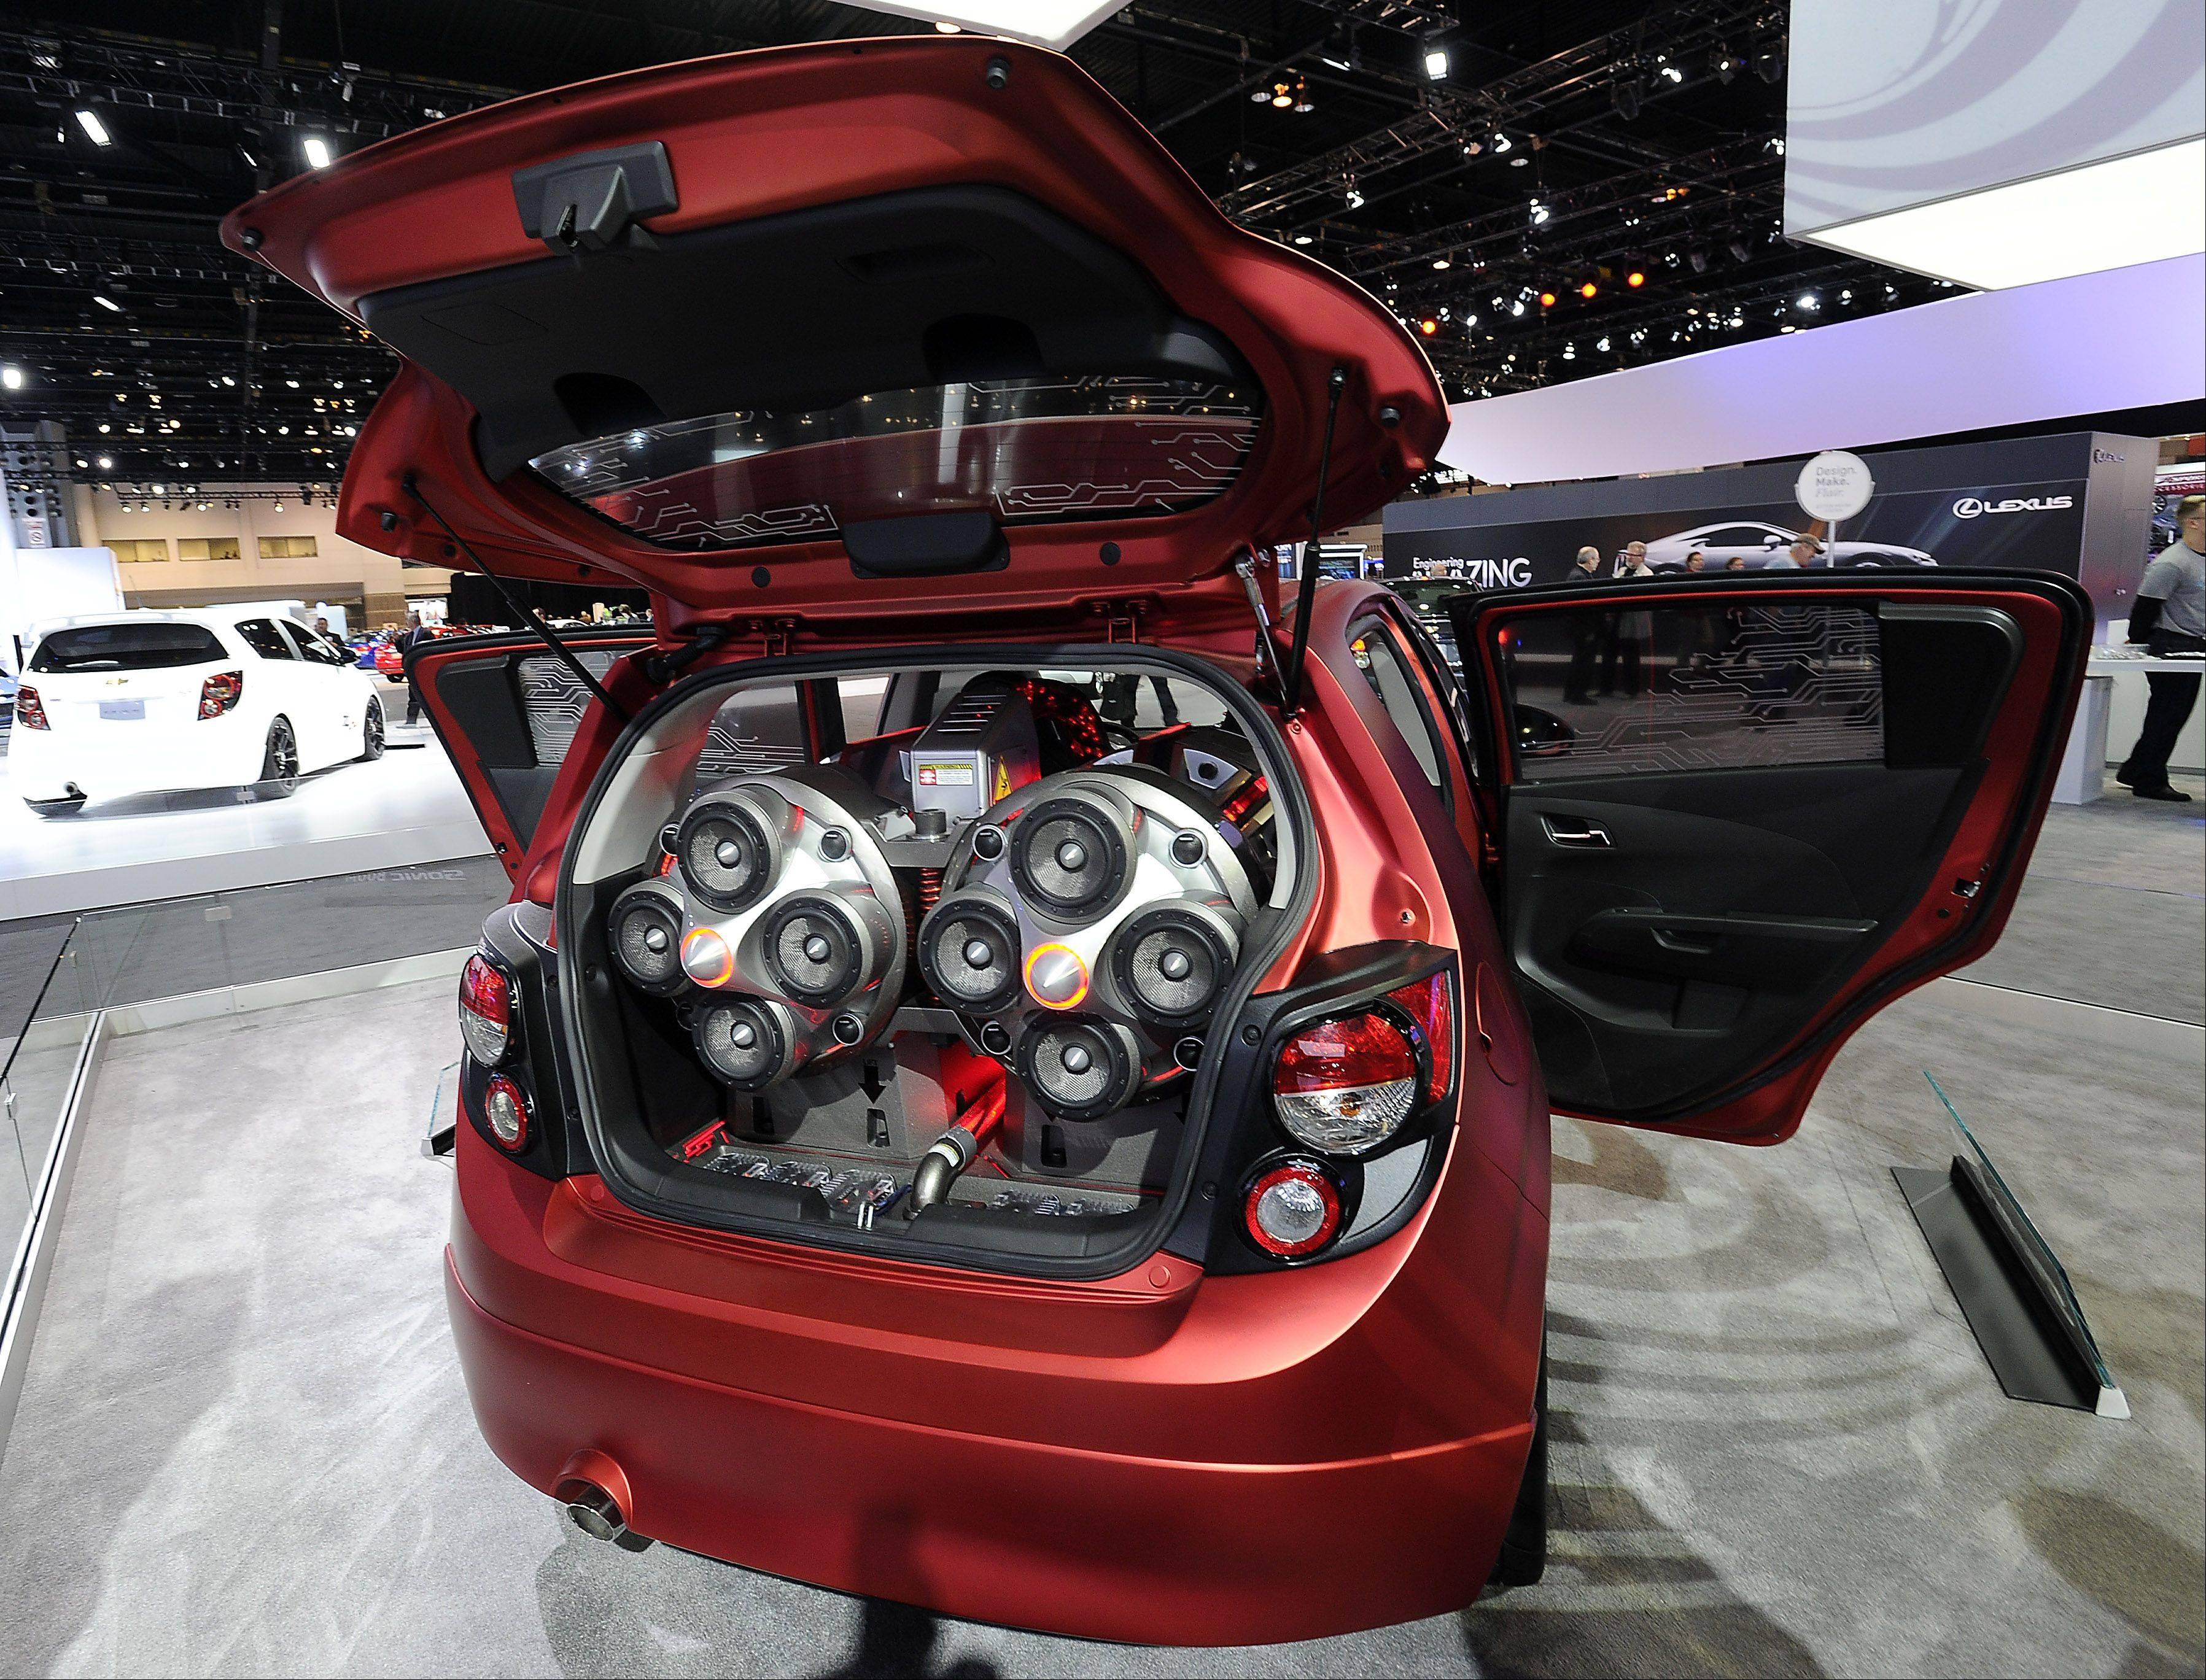 The Chevy Sonic Boom concept features speakers in the back and is displayed at the Chicago Auto Show .